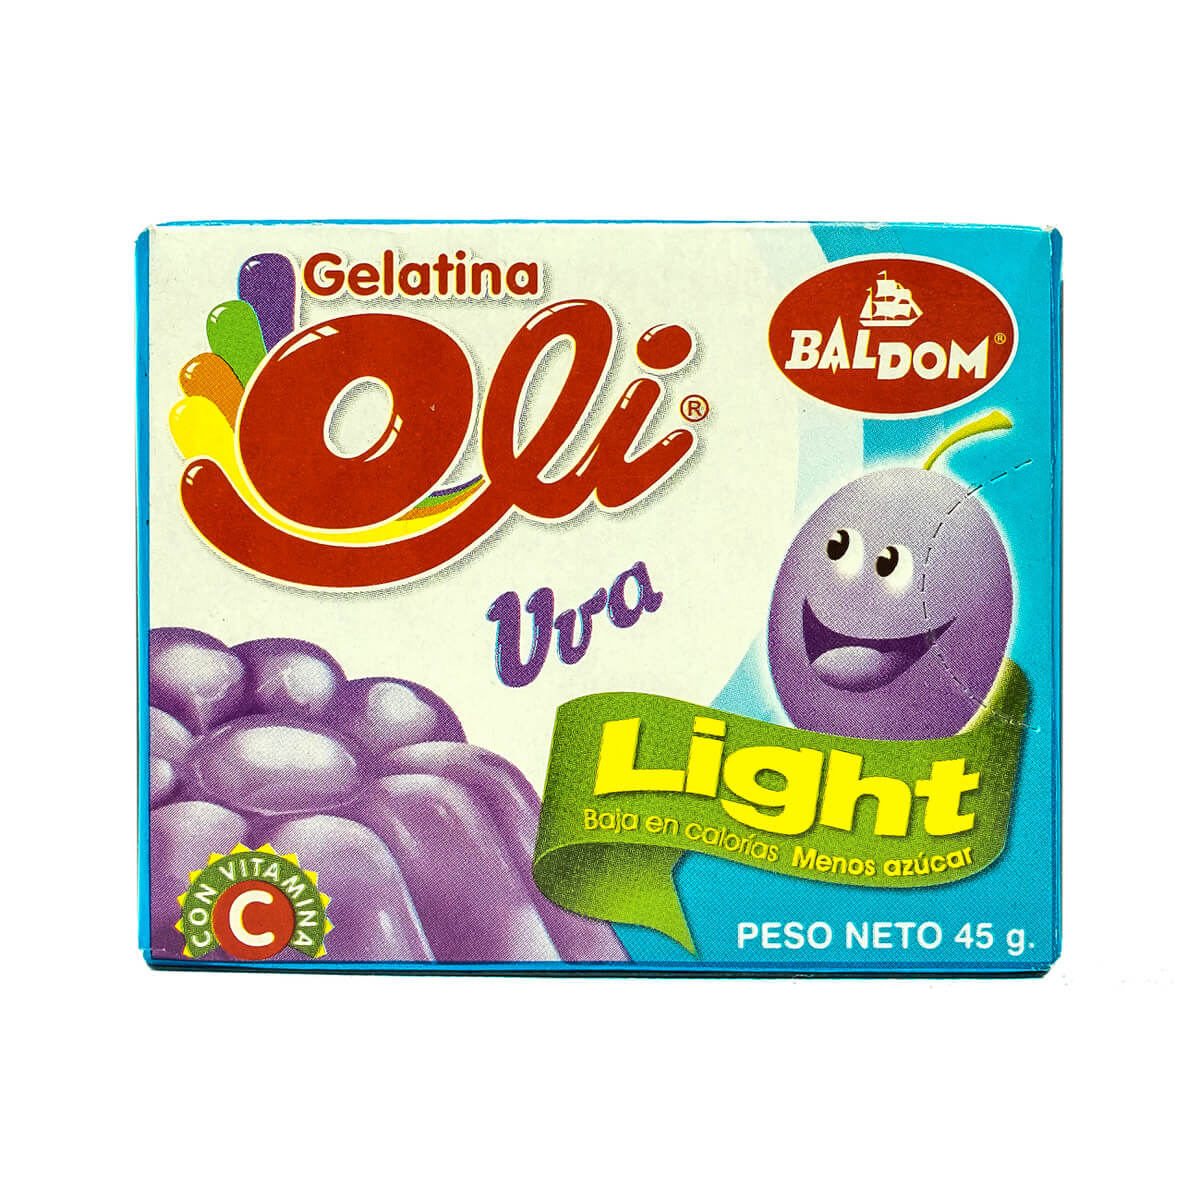 Gelatina Uva Light Oli